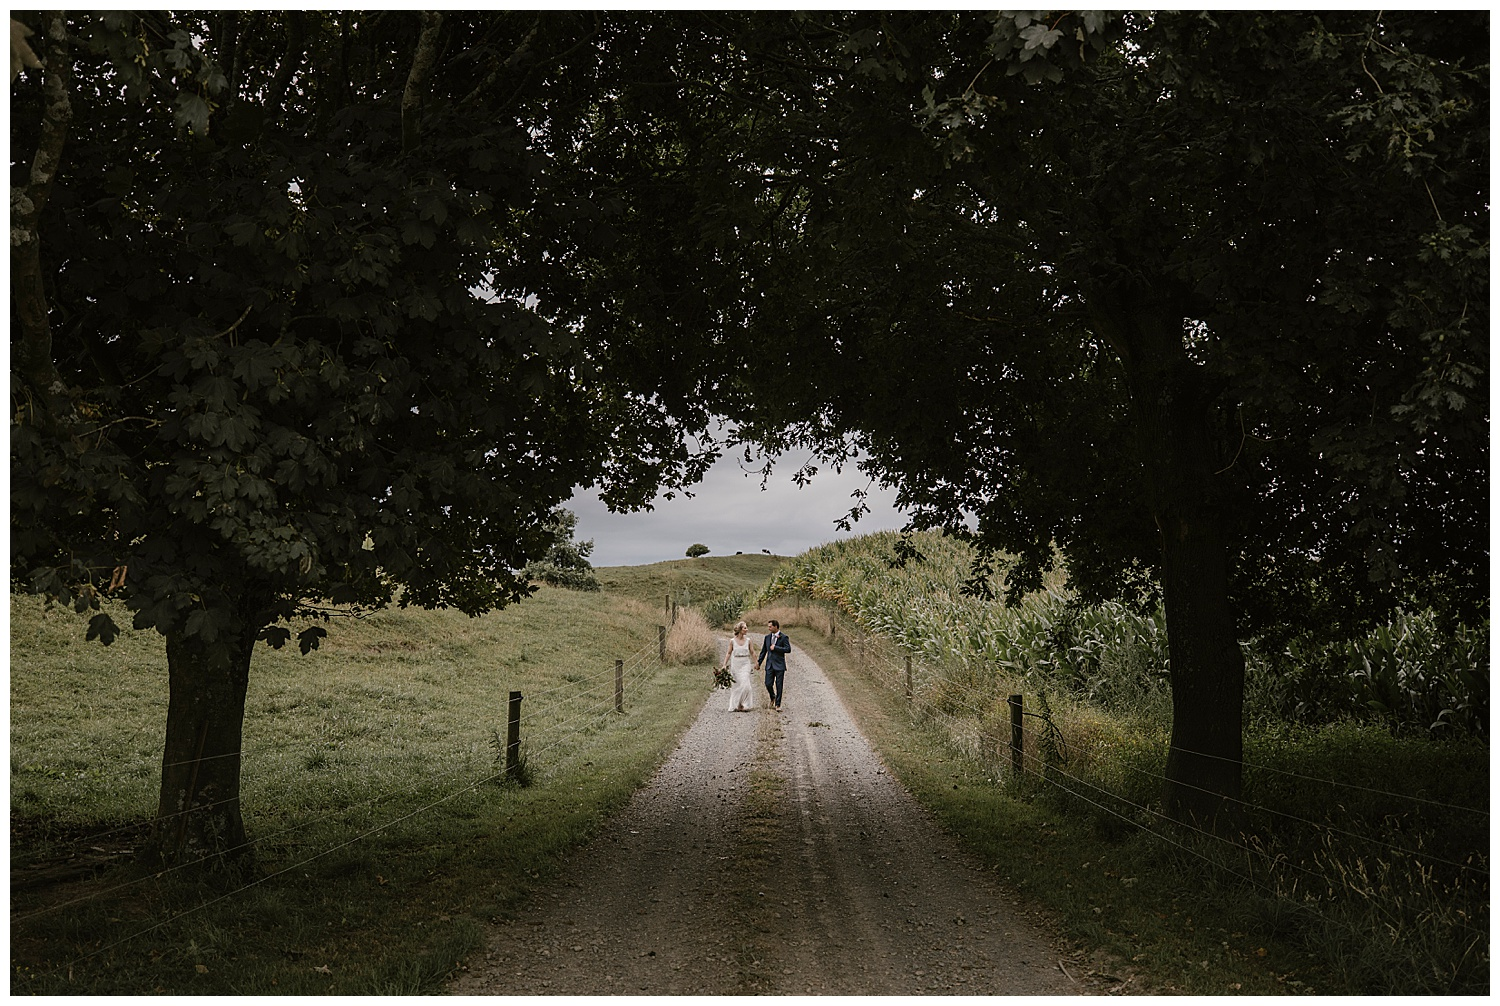 Aaron + Kate || 2 February || Family Farm